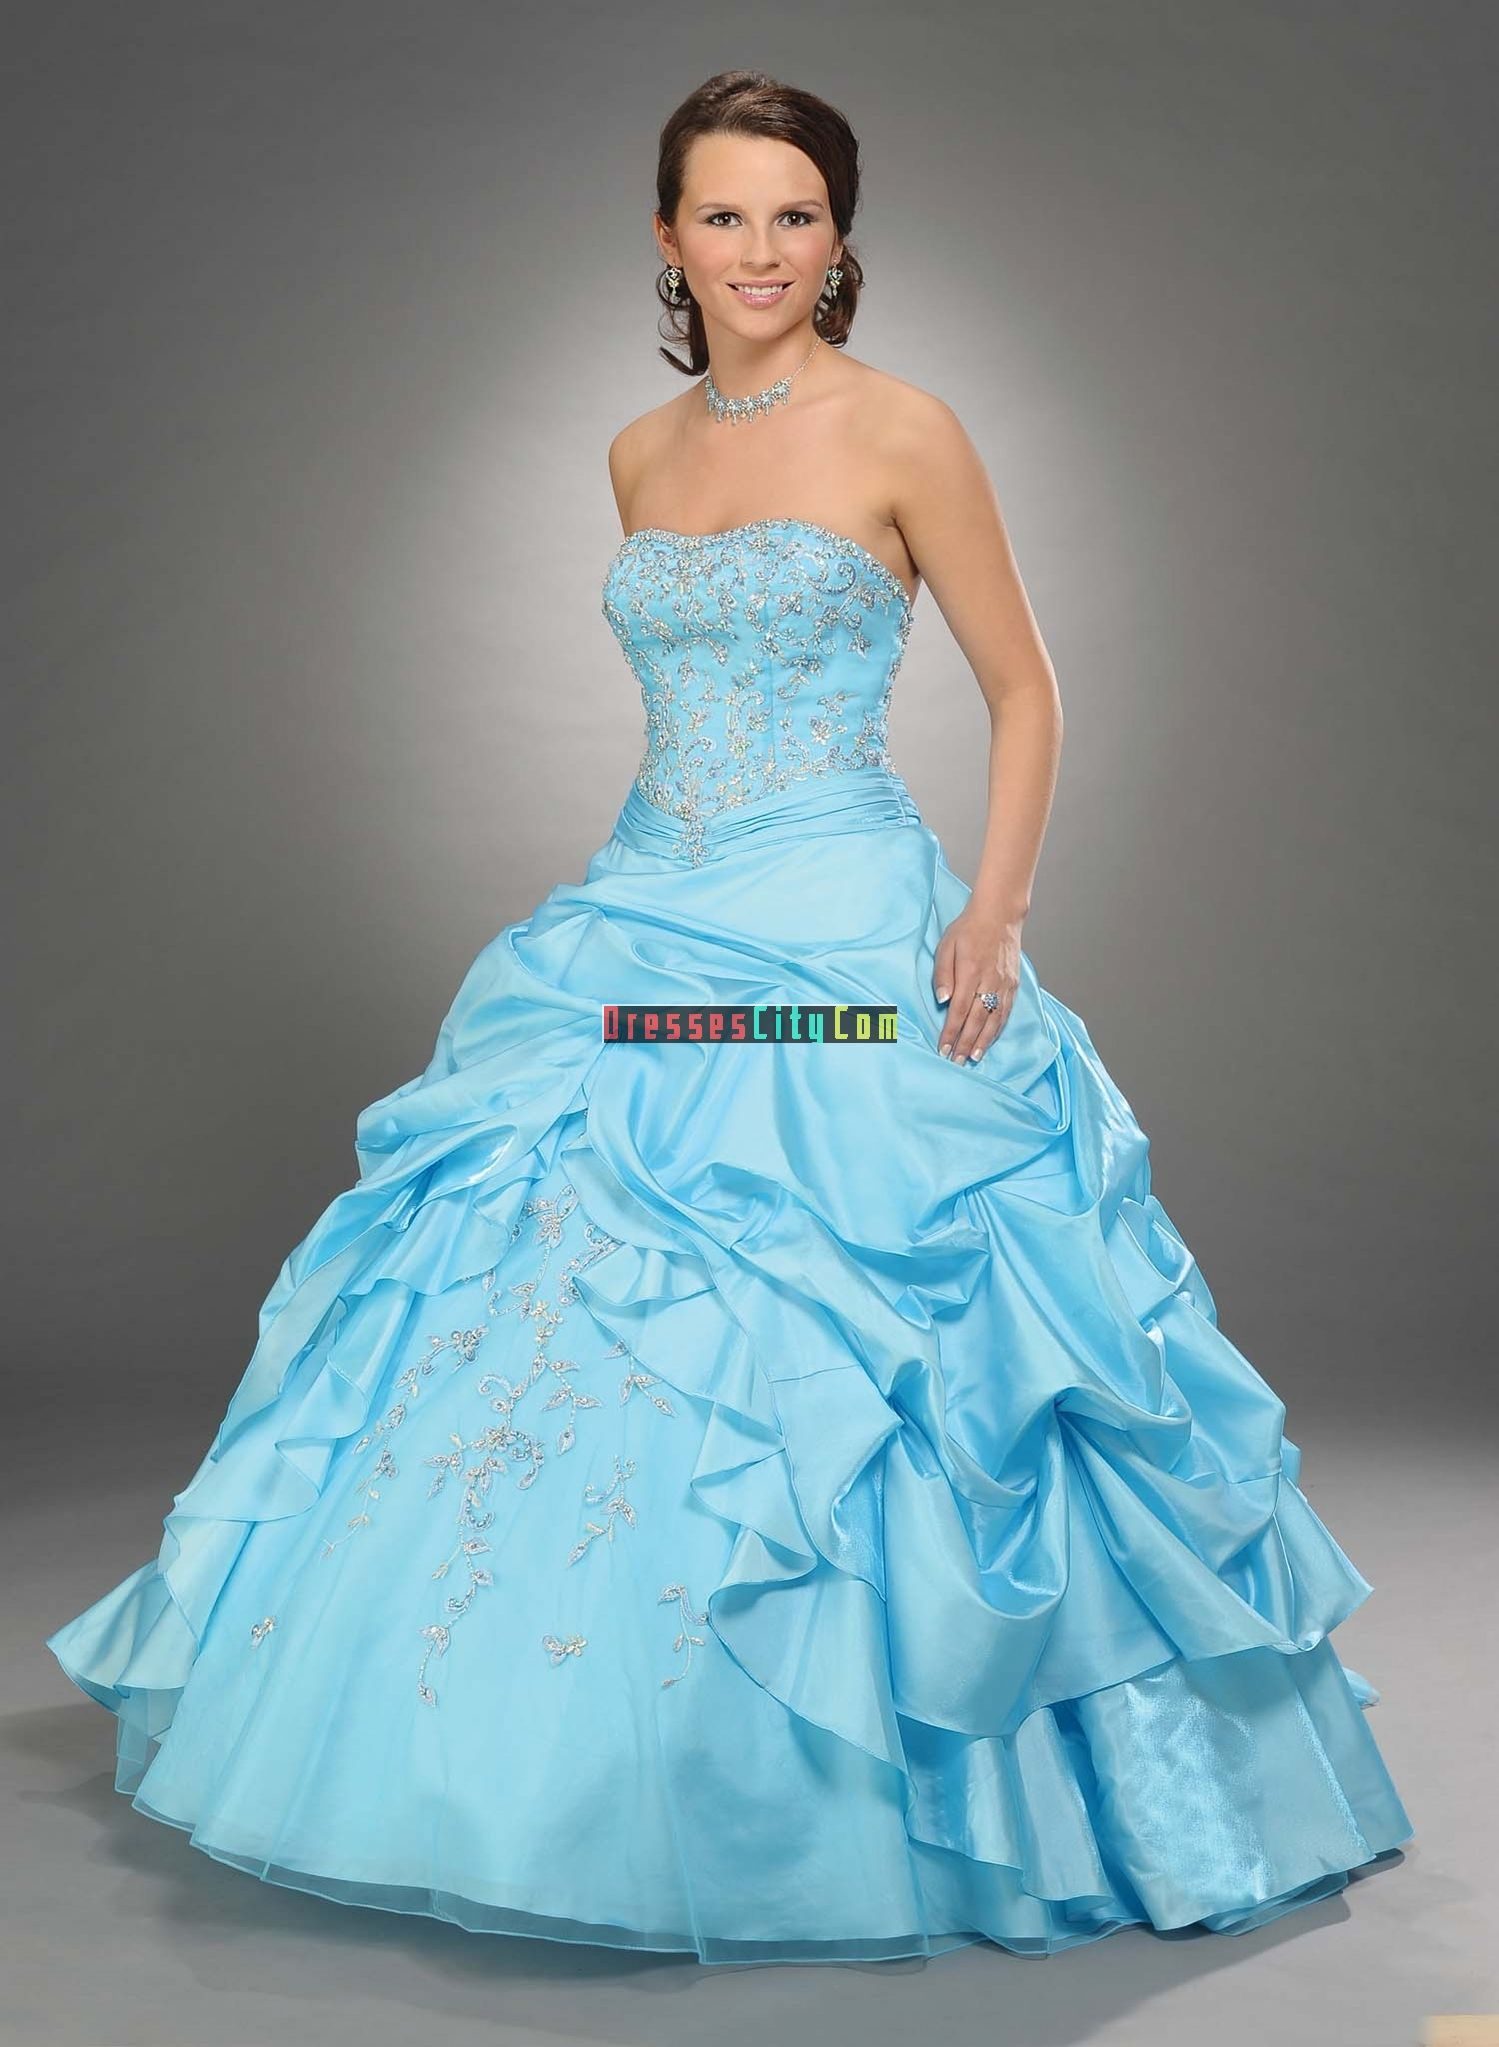 hot pink and baby blue wedding | ... ball gown strapless floor ...